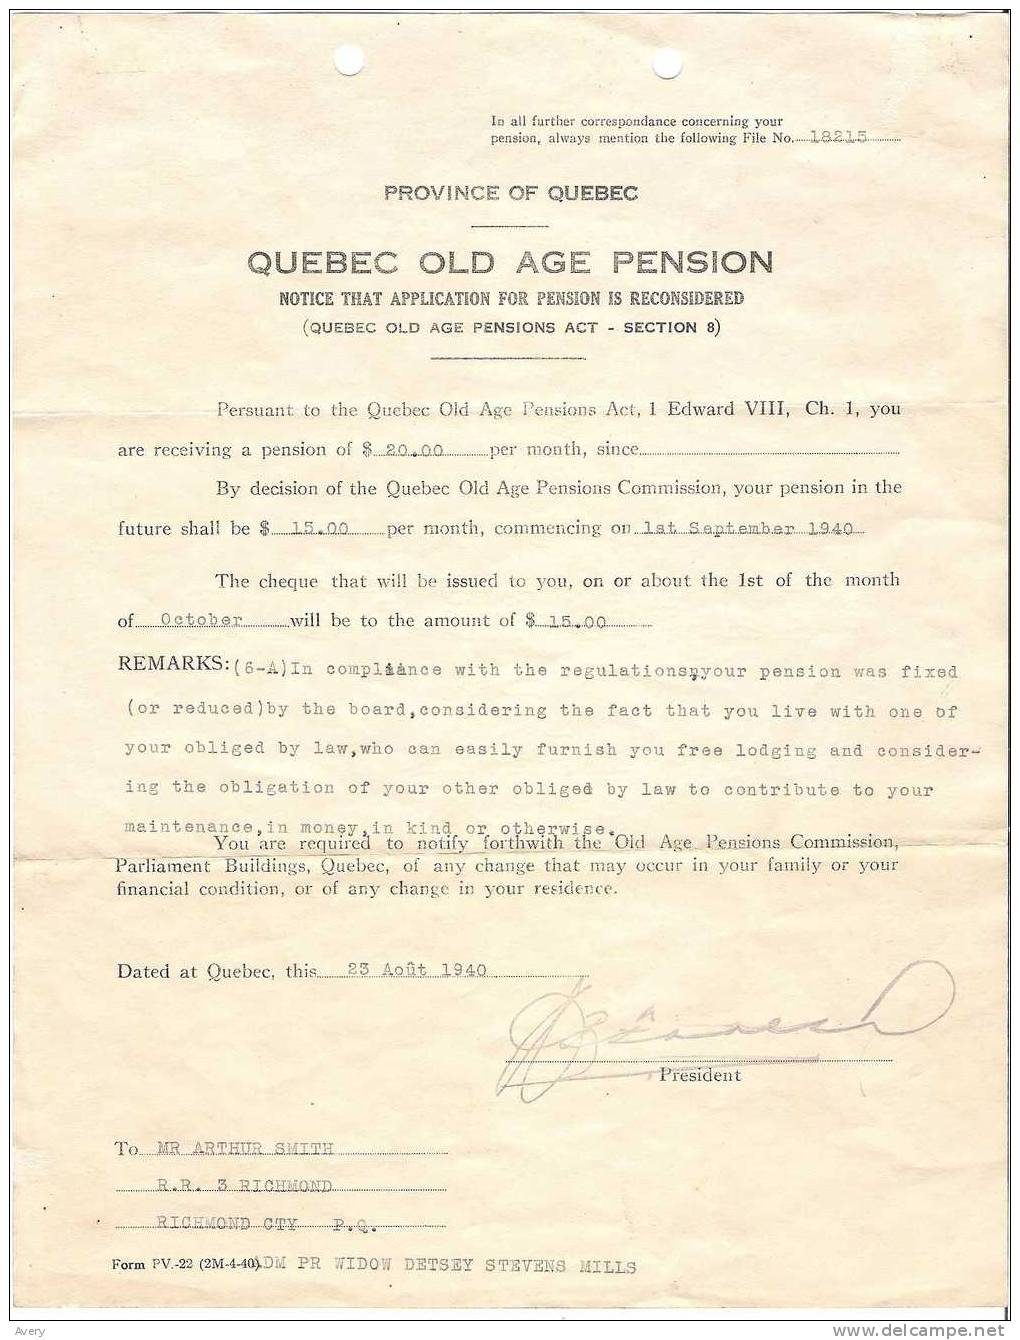 Quebec Old Age Pension Notice That Application For Pension Is Reconsidered 1940 - Announcements